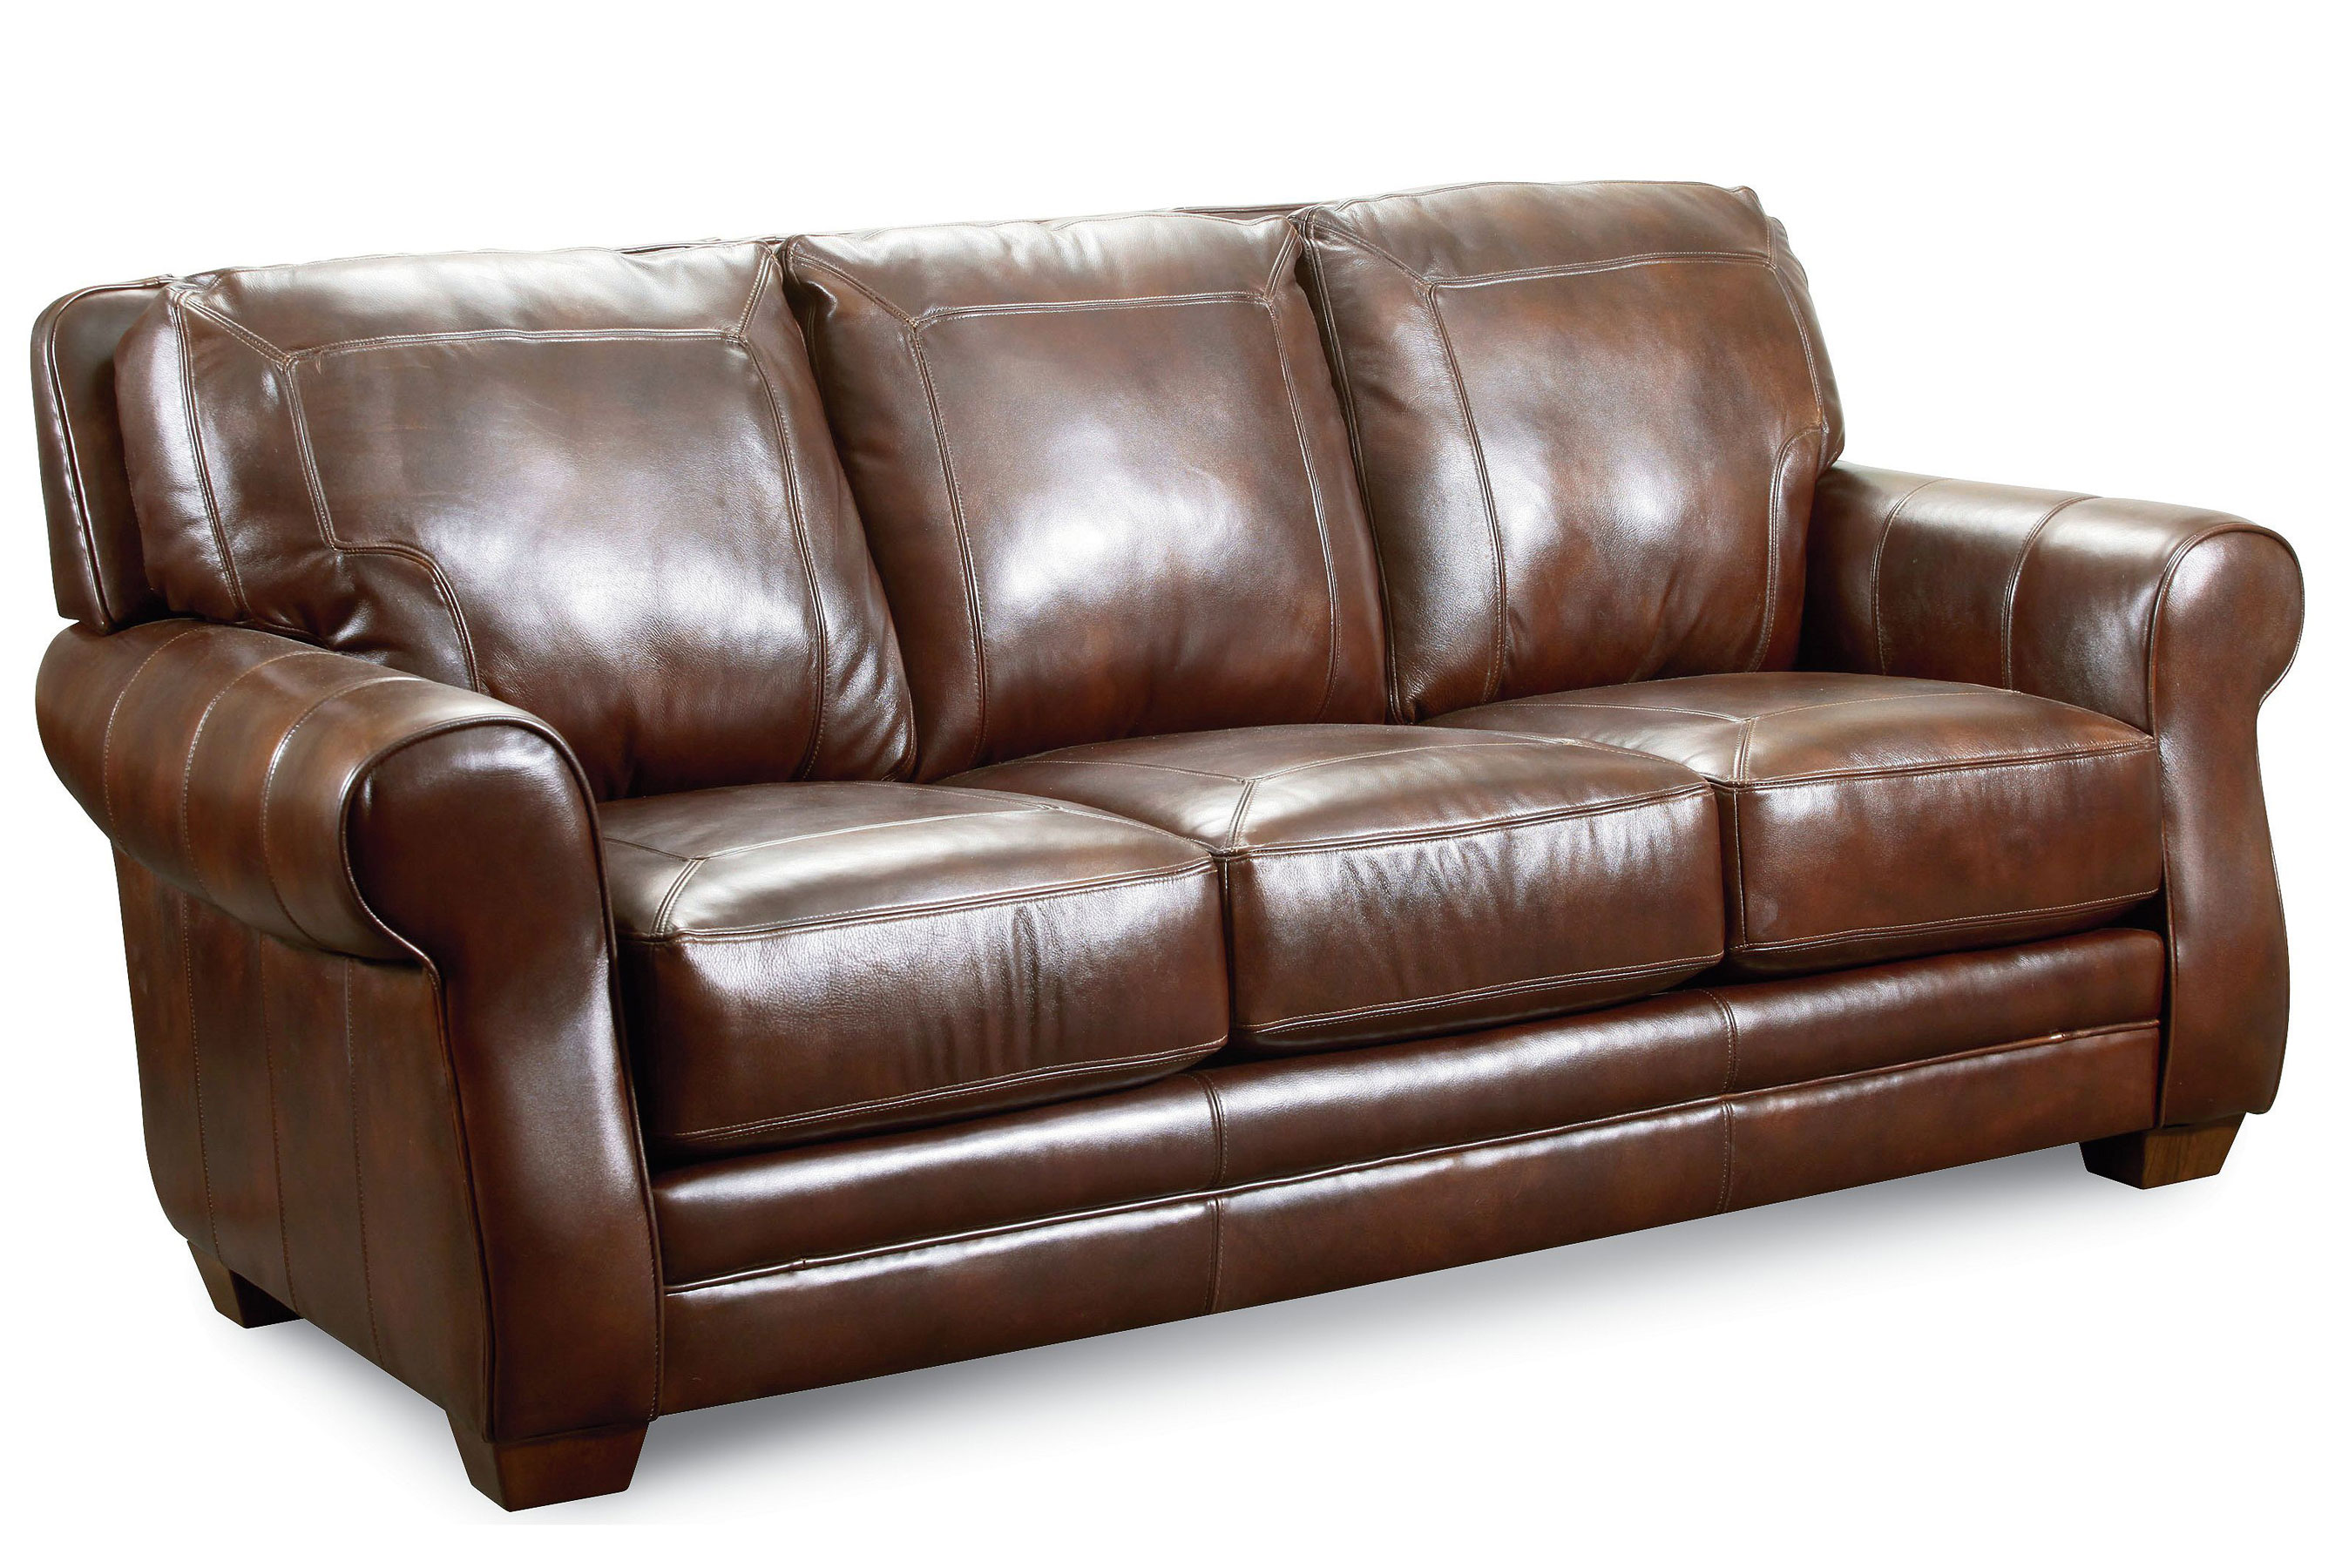 Bowden 84u0026quot; Leather 548 Sofa. By Lane